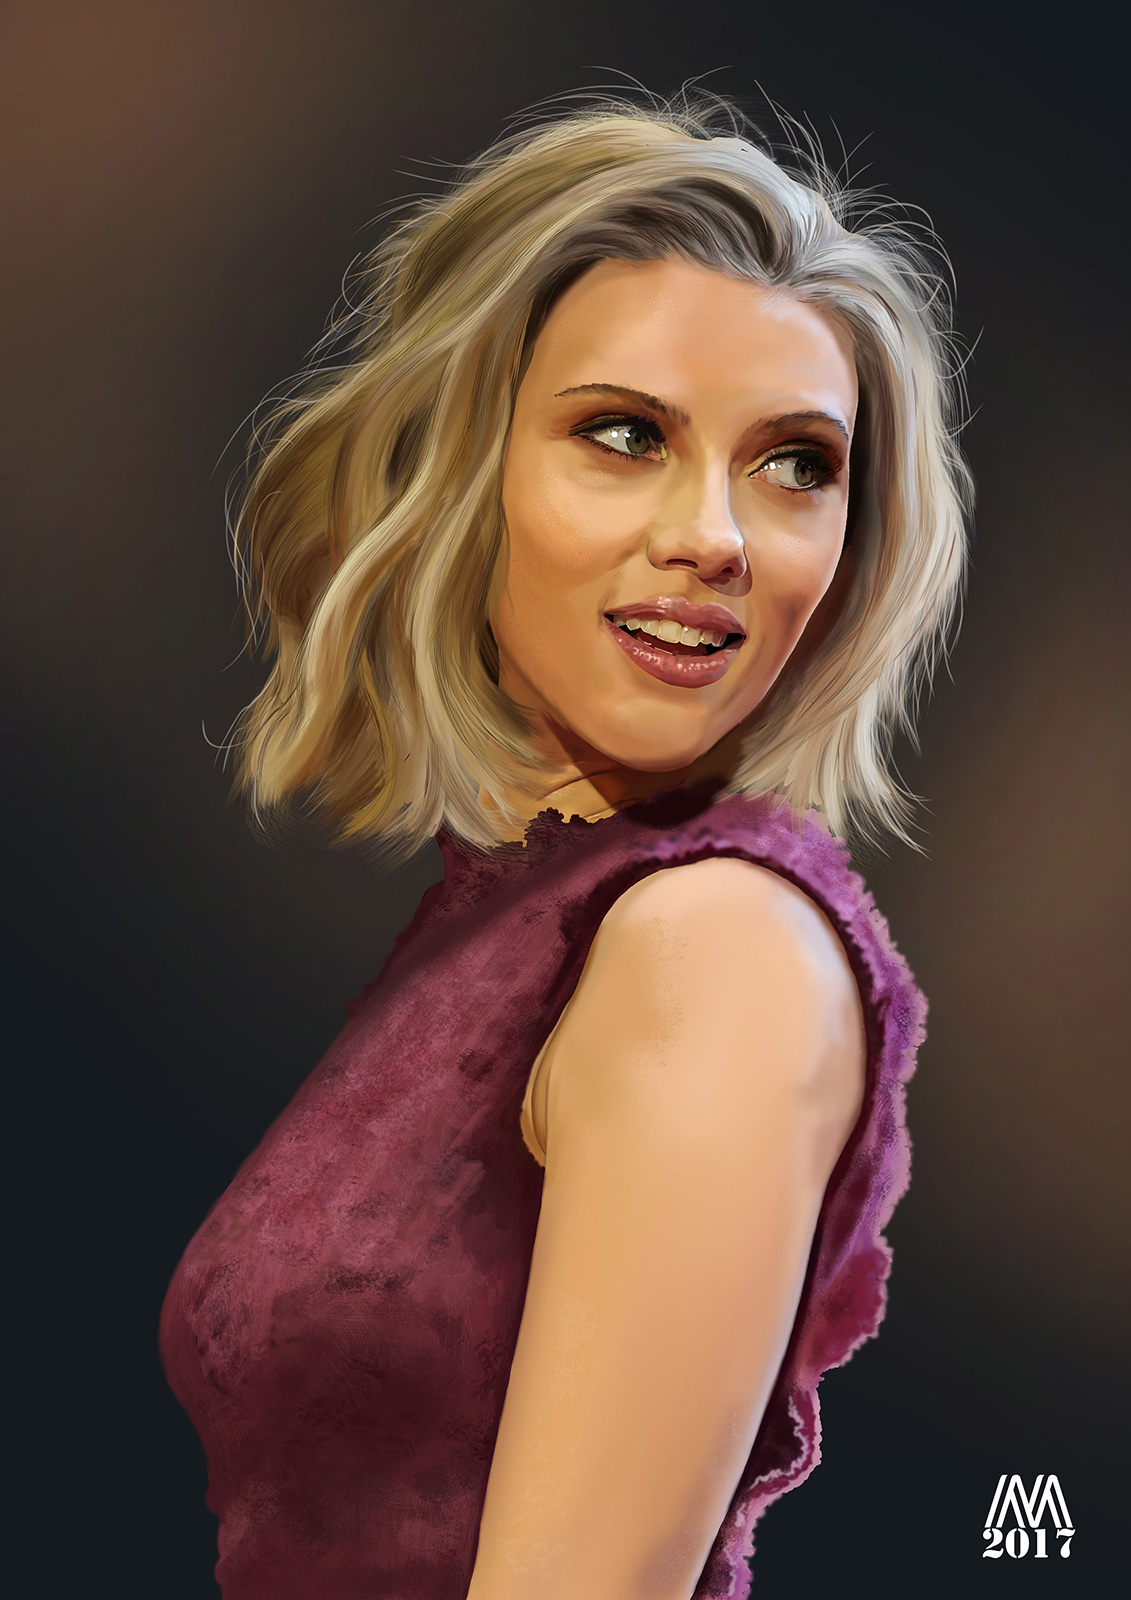 Scarlett digital painting de Micado